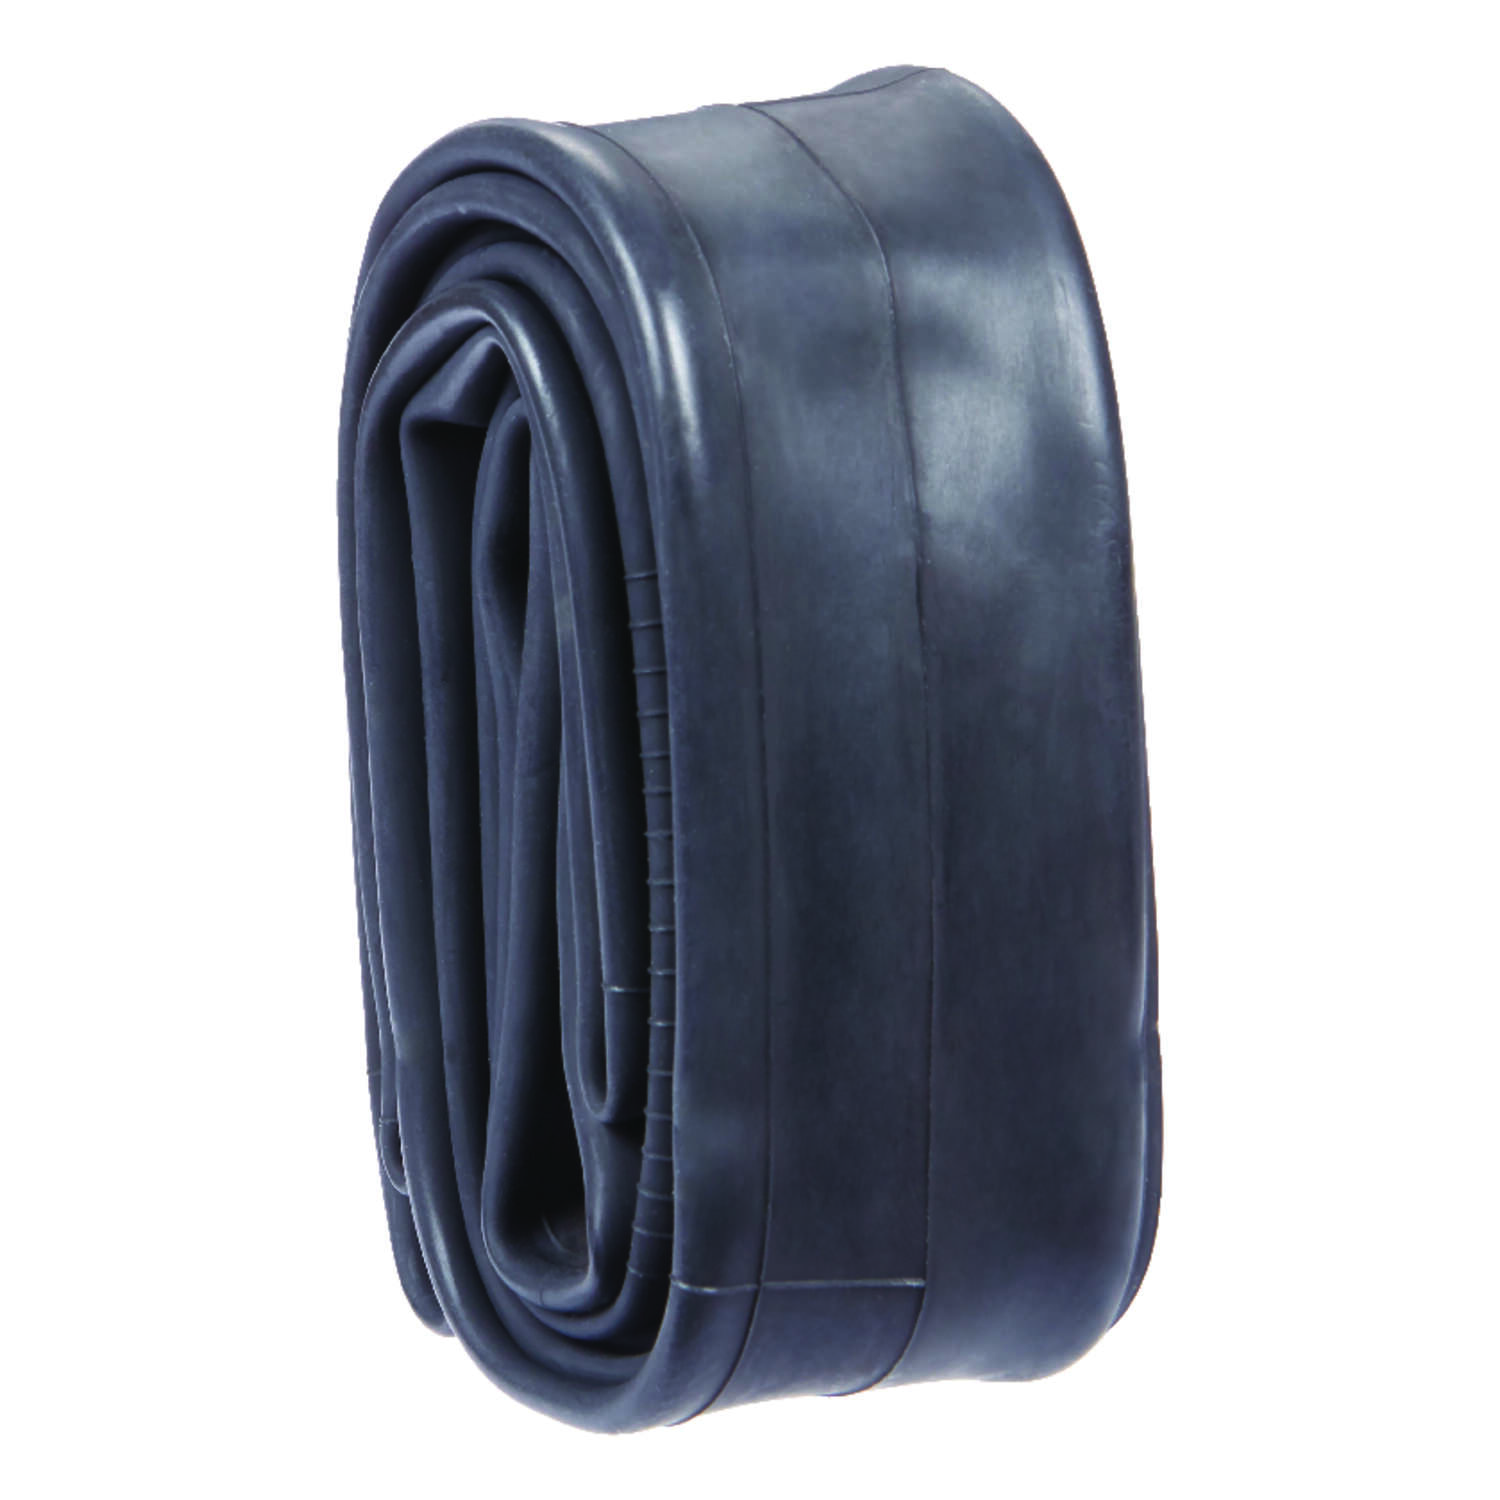 Bell Sports  Standard  24 in. Rubber  Bike Tube  24 x 1.75 - 2.25  1 pk